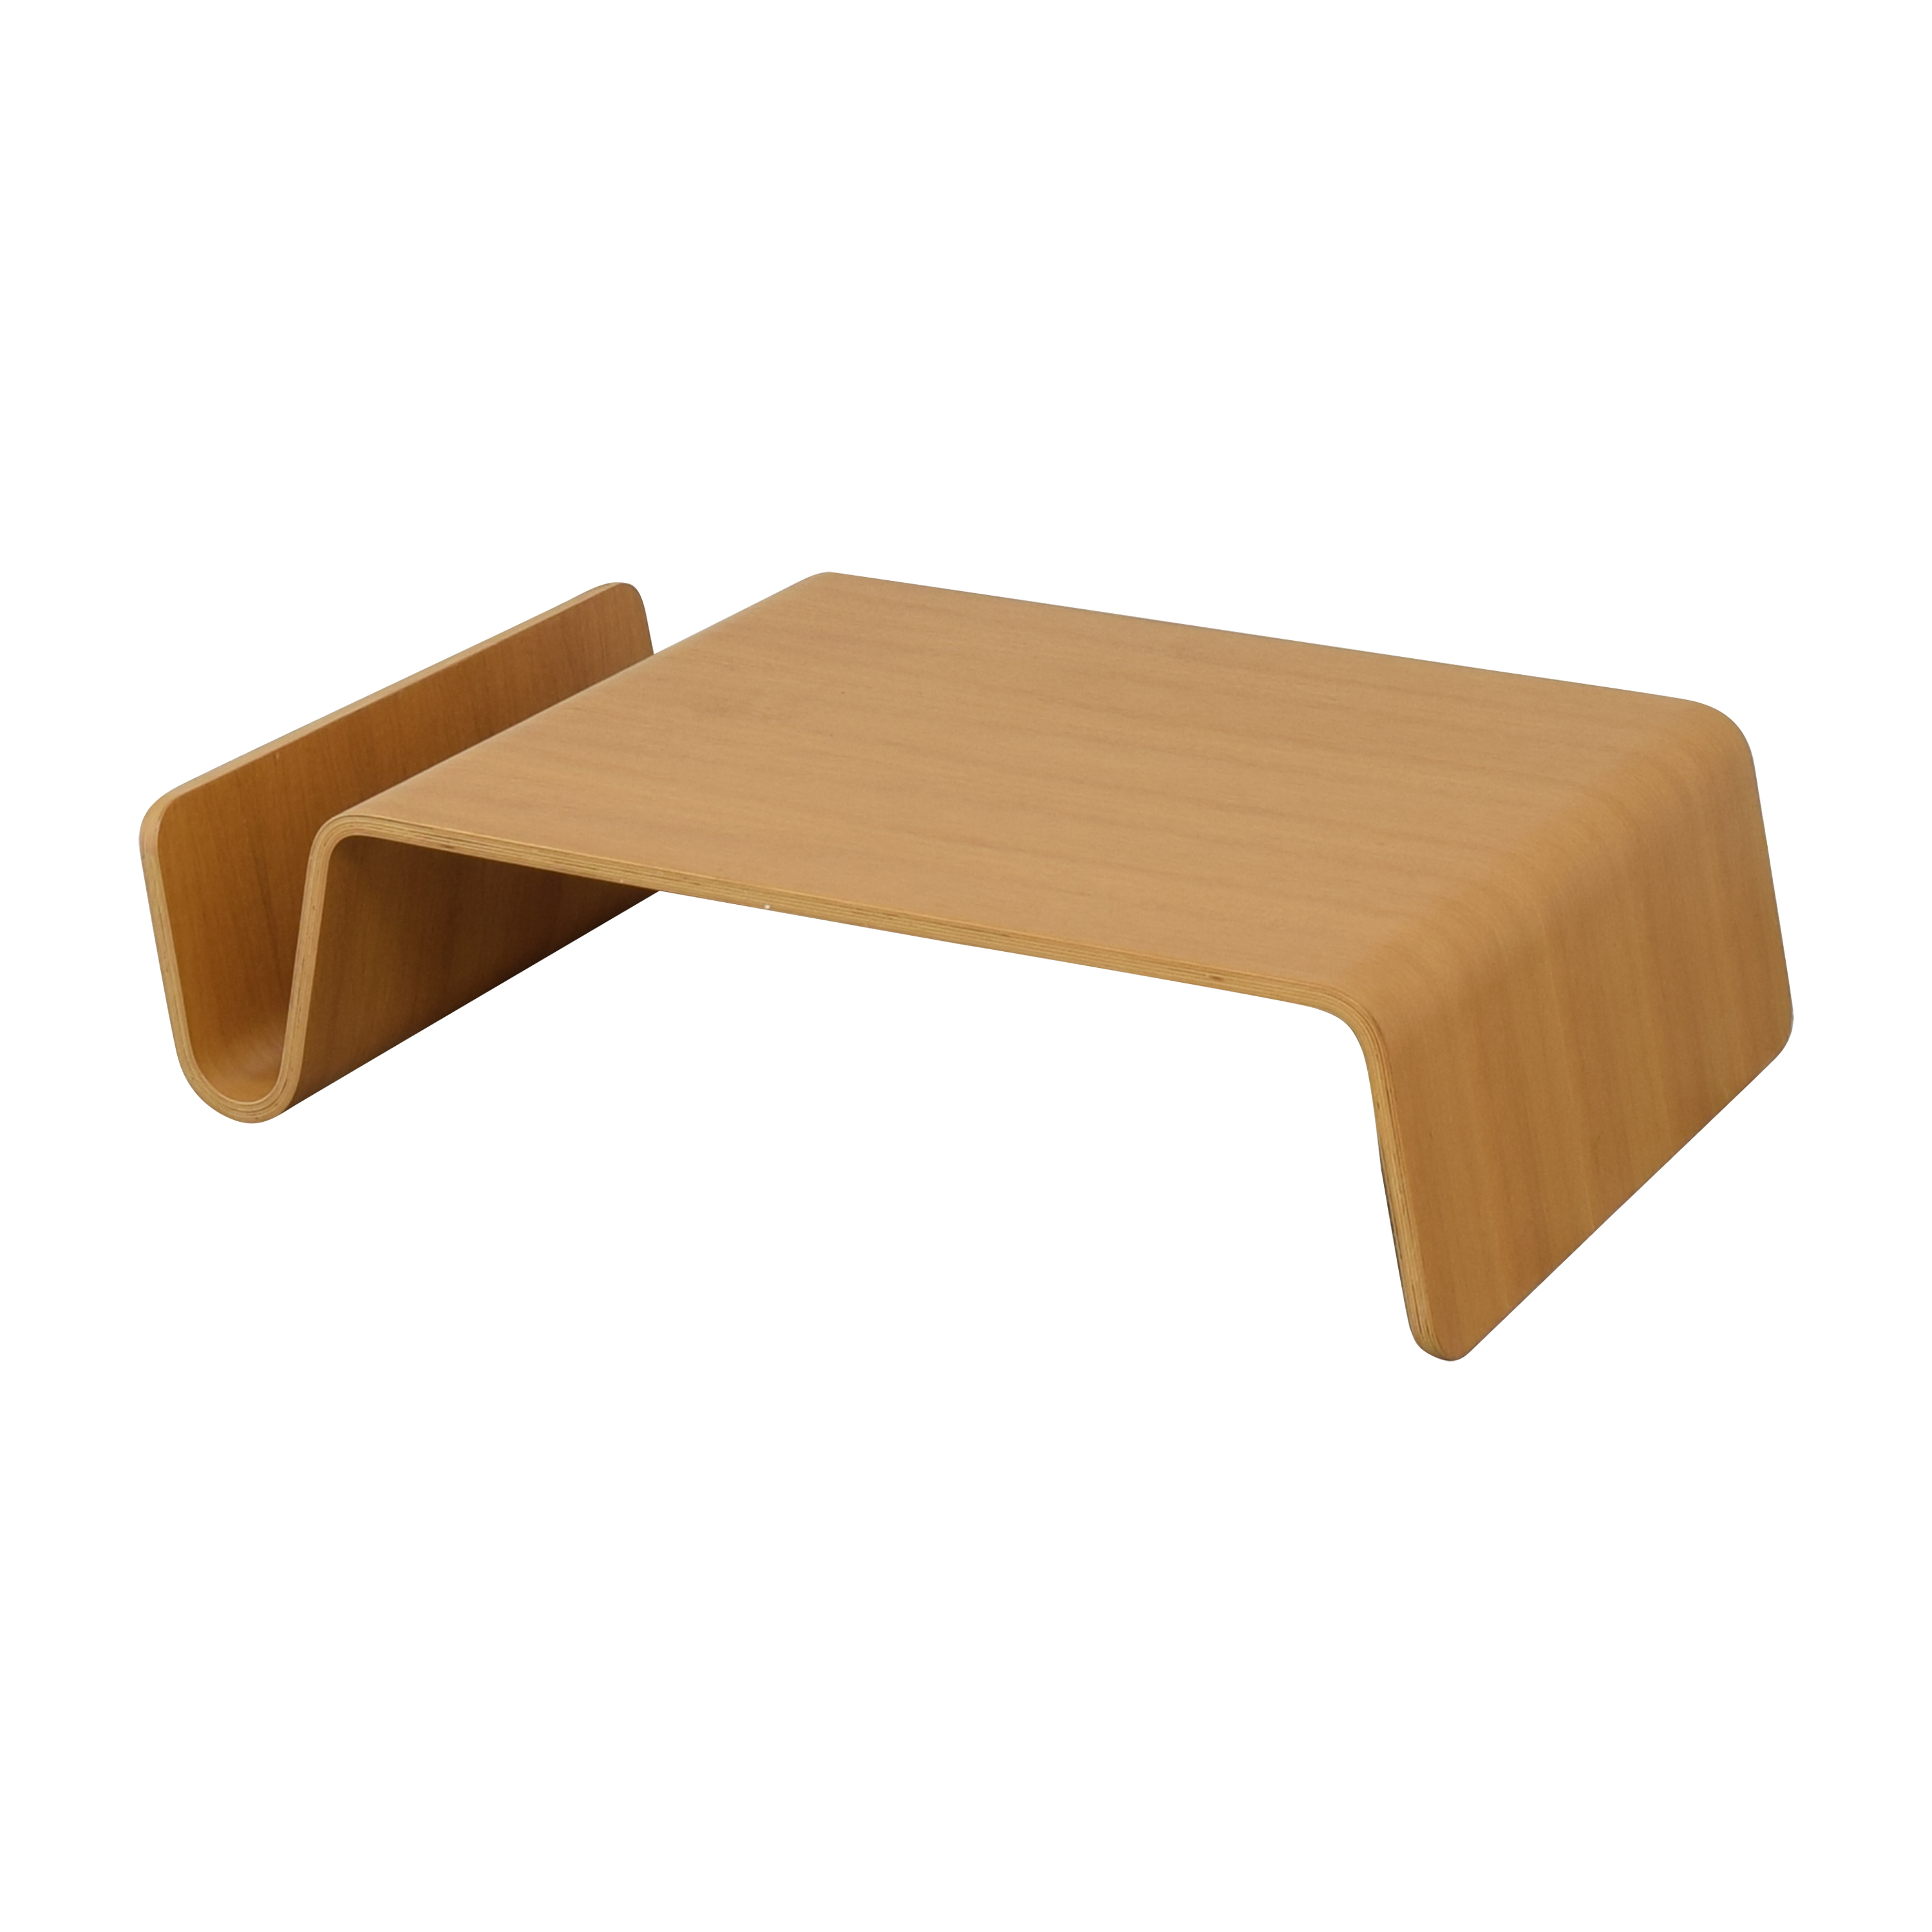 Offi Offi Scando Molded Plywood Coffee Table pa